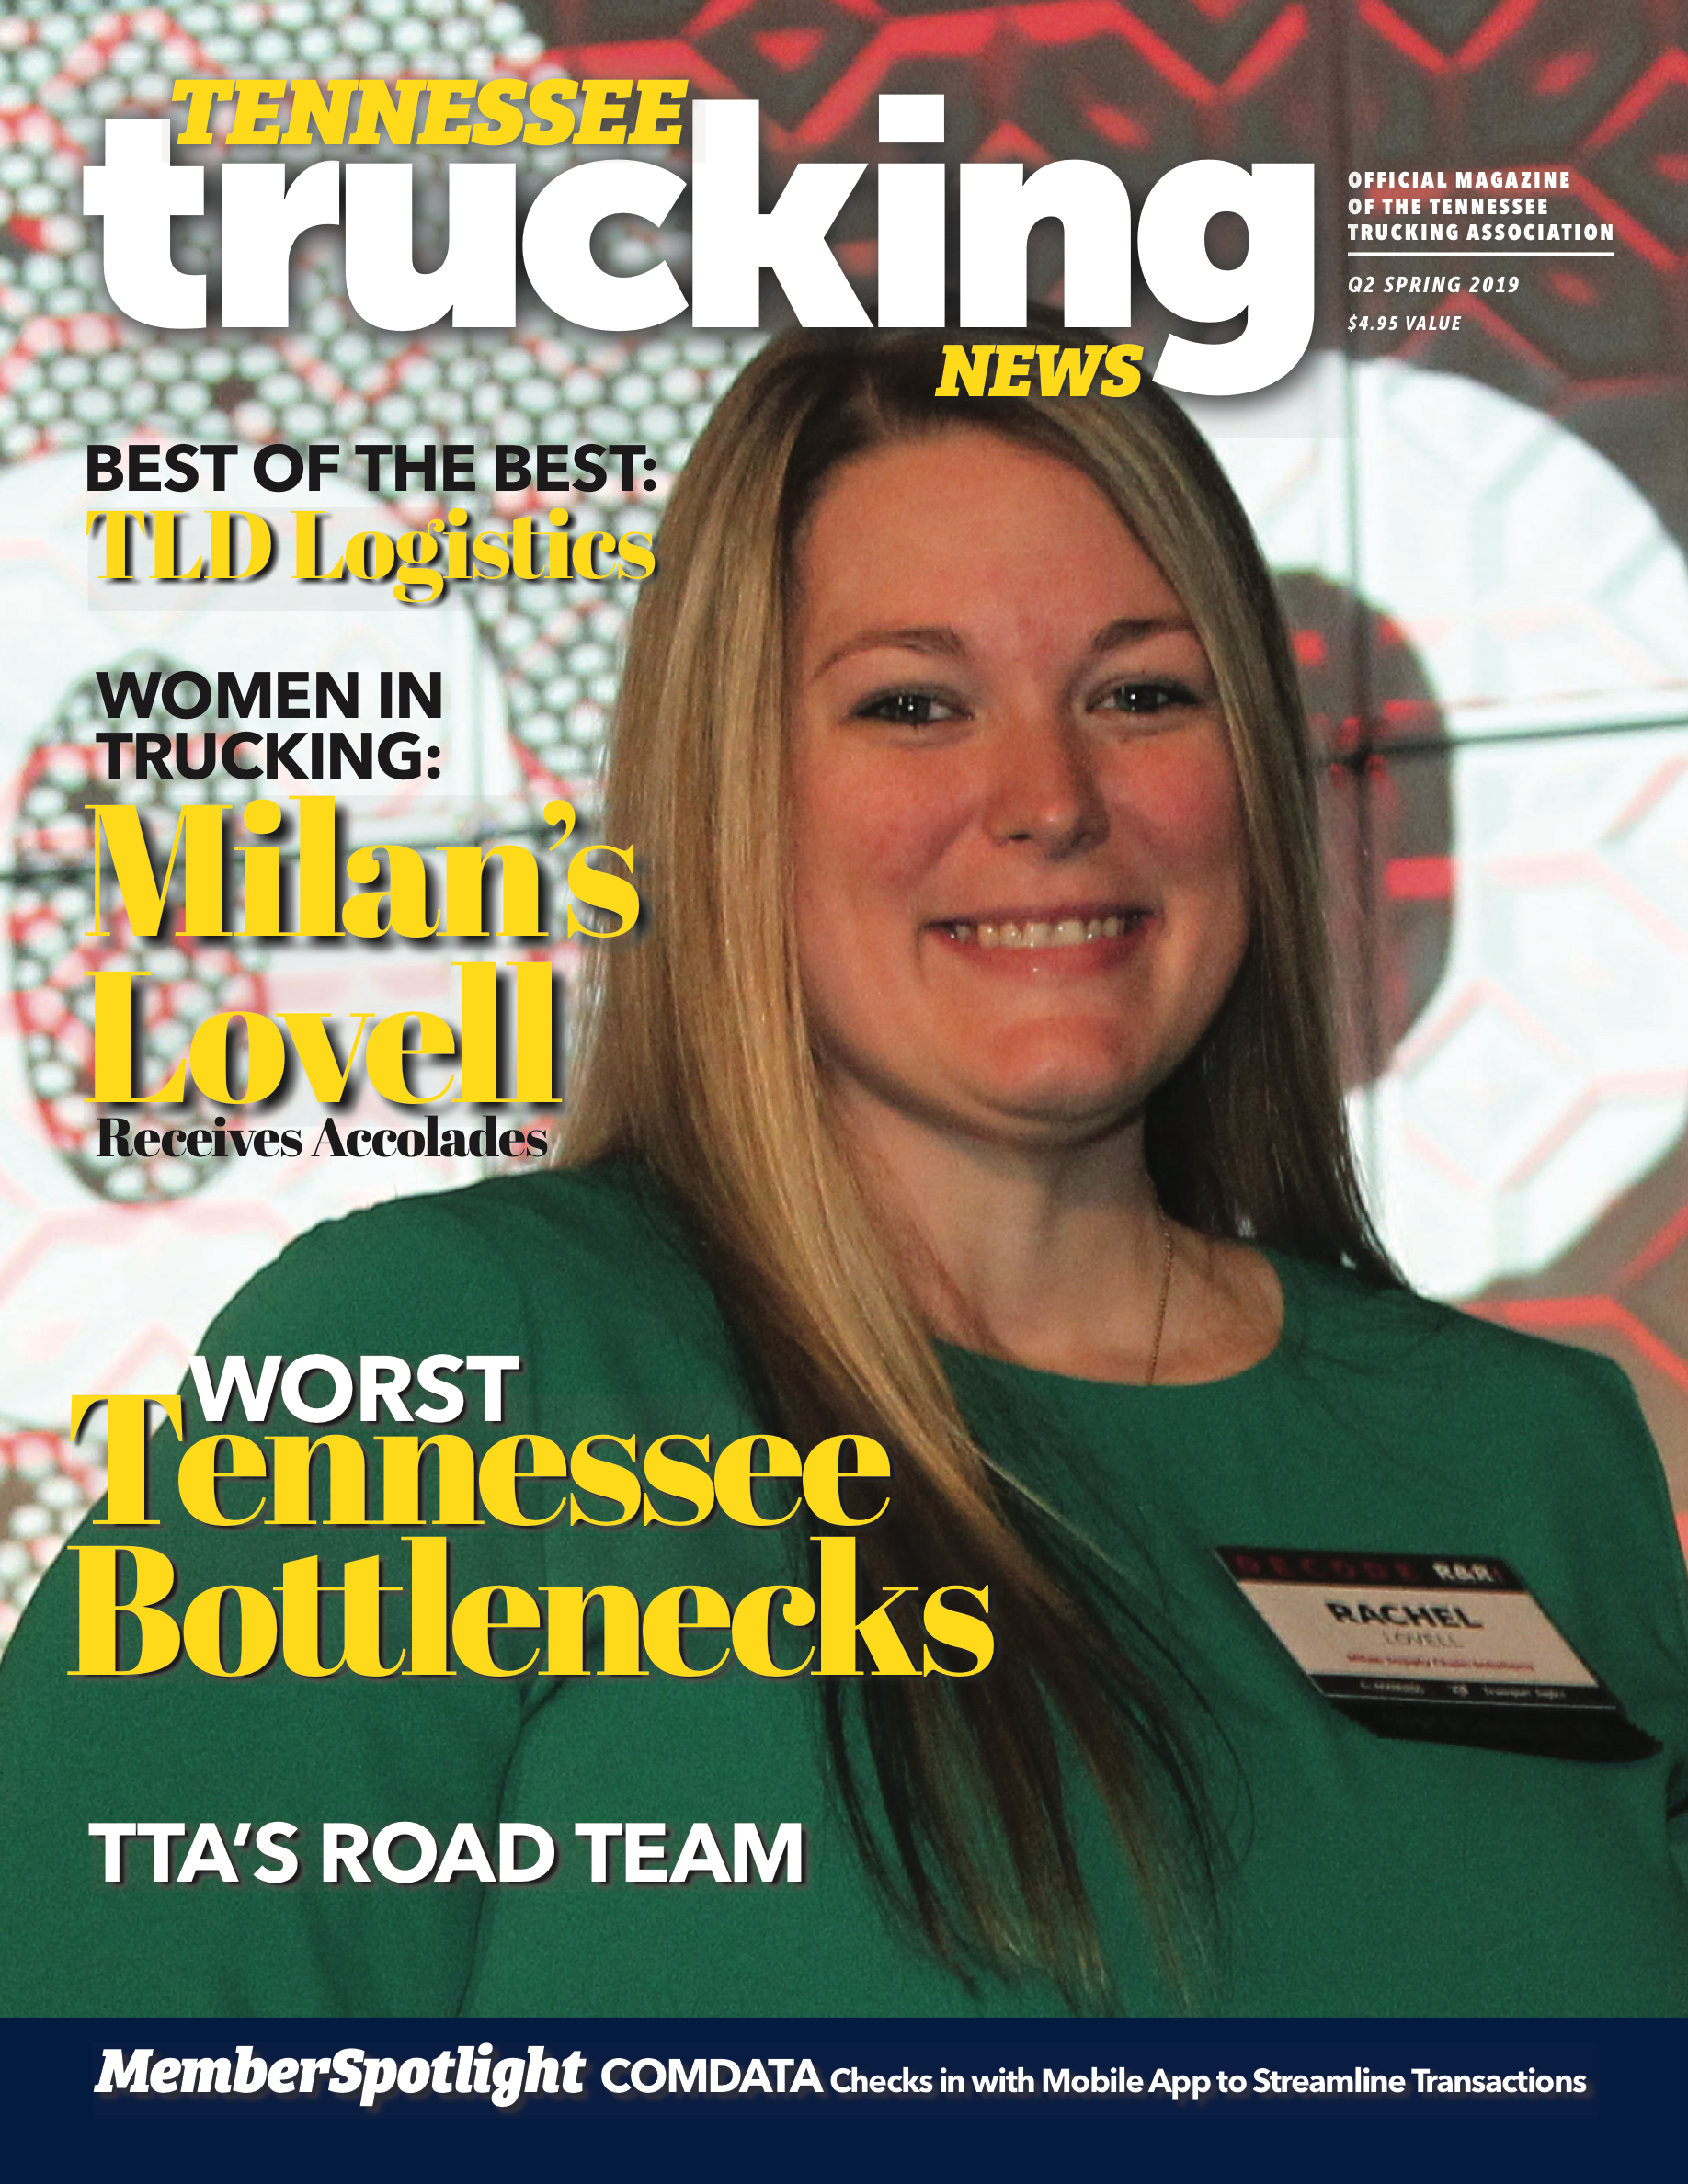 Tennessee Trucking News Q1 Spring 2019 Pages 1 - 36 - Text